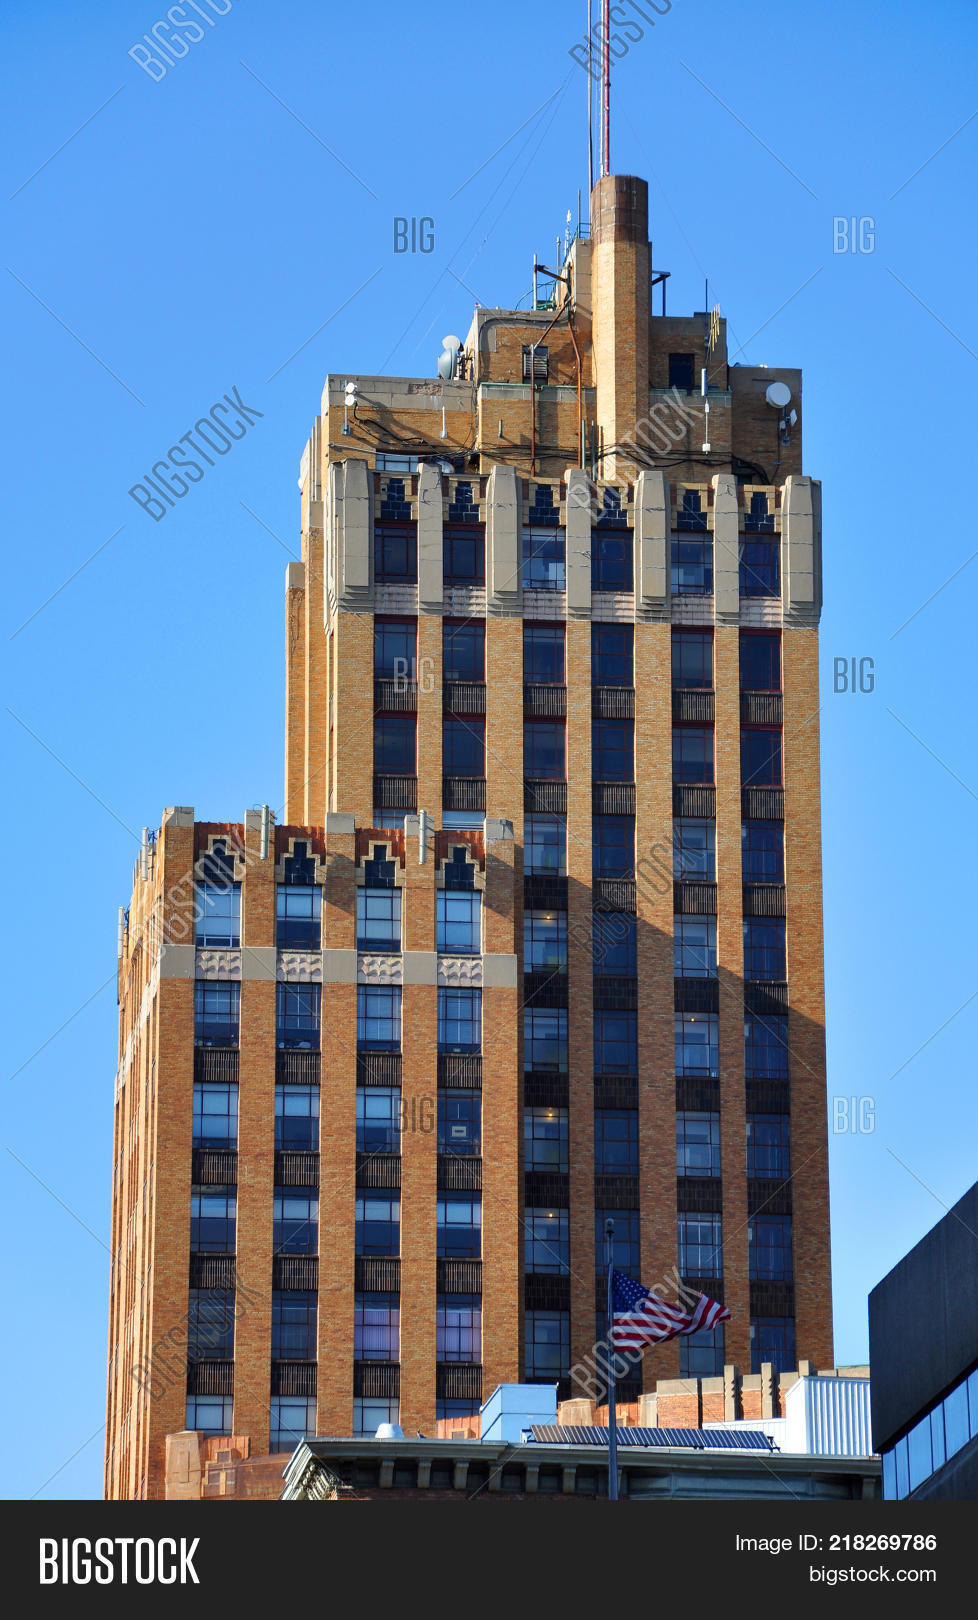 state tower building image photo free trial bigstock